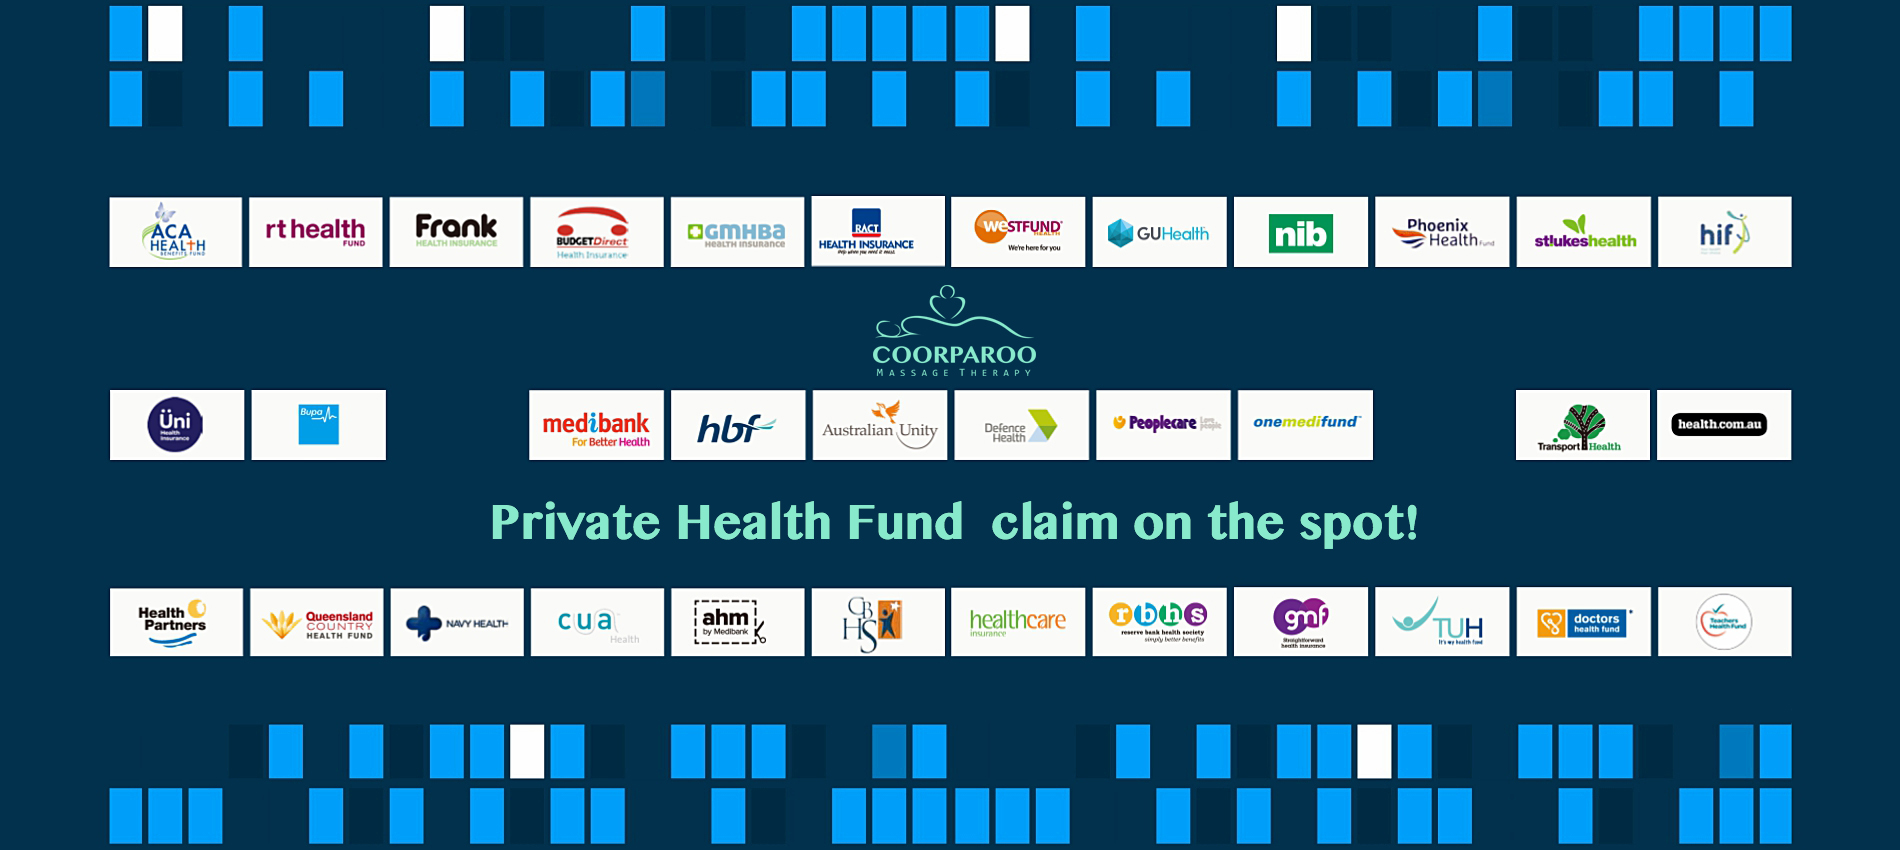 Private Health Fund